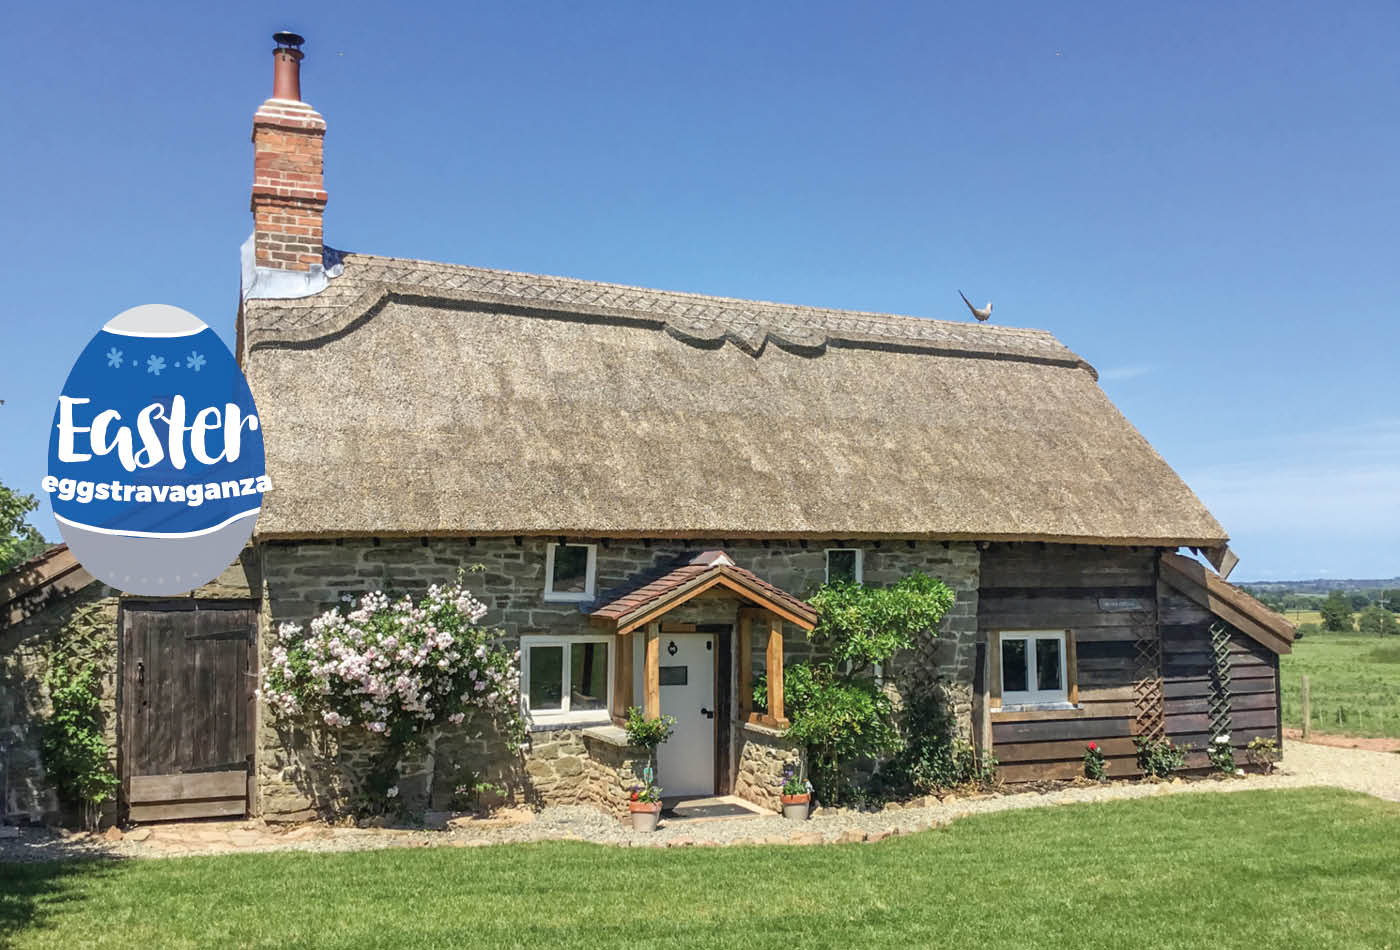 Sykes Holiday Cottages Easter Eggstravaganza Offers